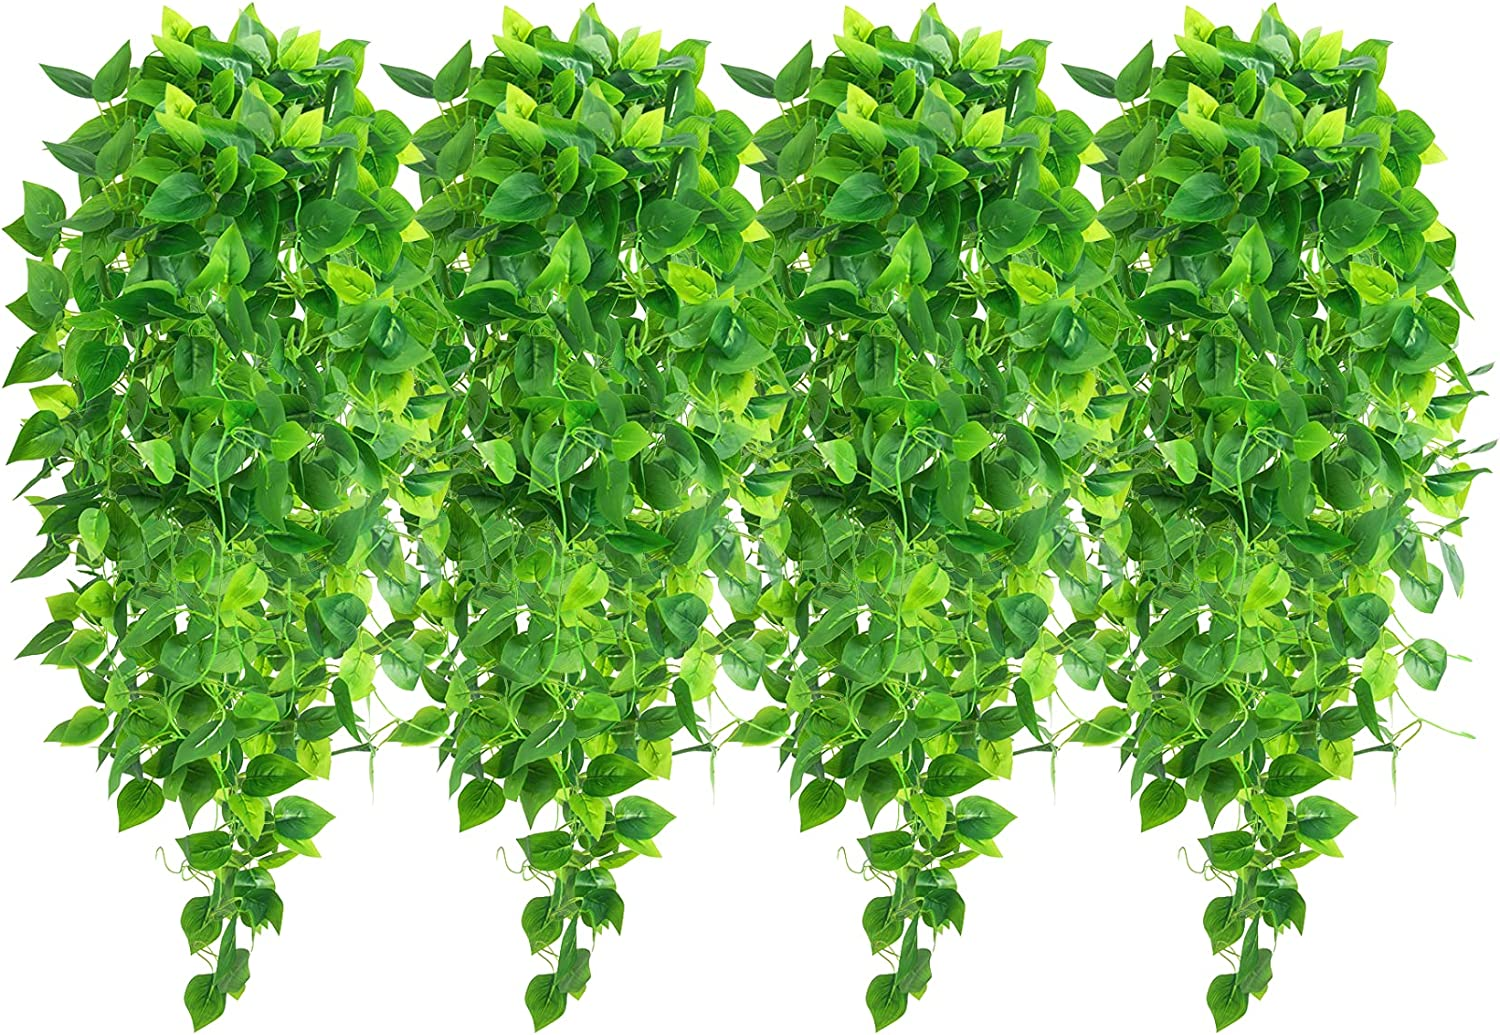 4 Pcs Fake Hanging Plants Artificial Greenery 3.6ft Faux Ivy Vines Hanging Wall Plants for Home Decor Room Garden Indoor Outdoor Decorations (No Basket)